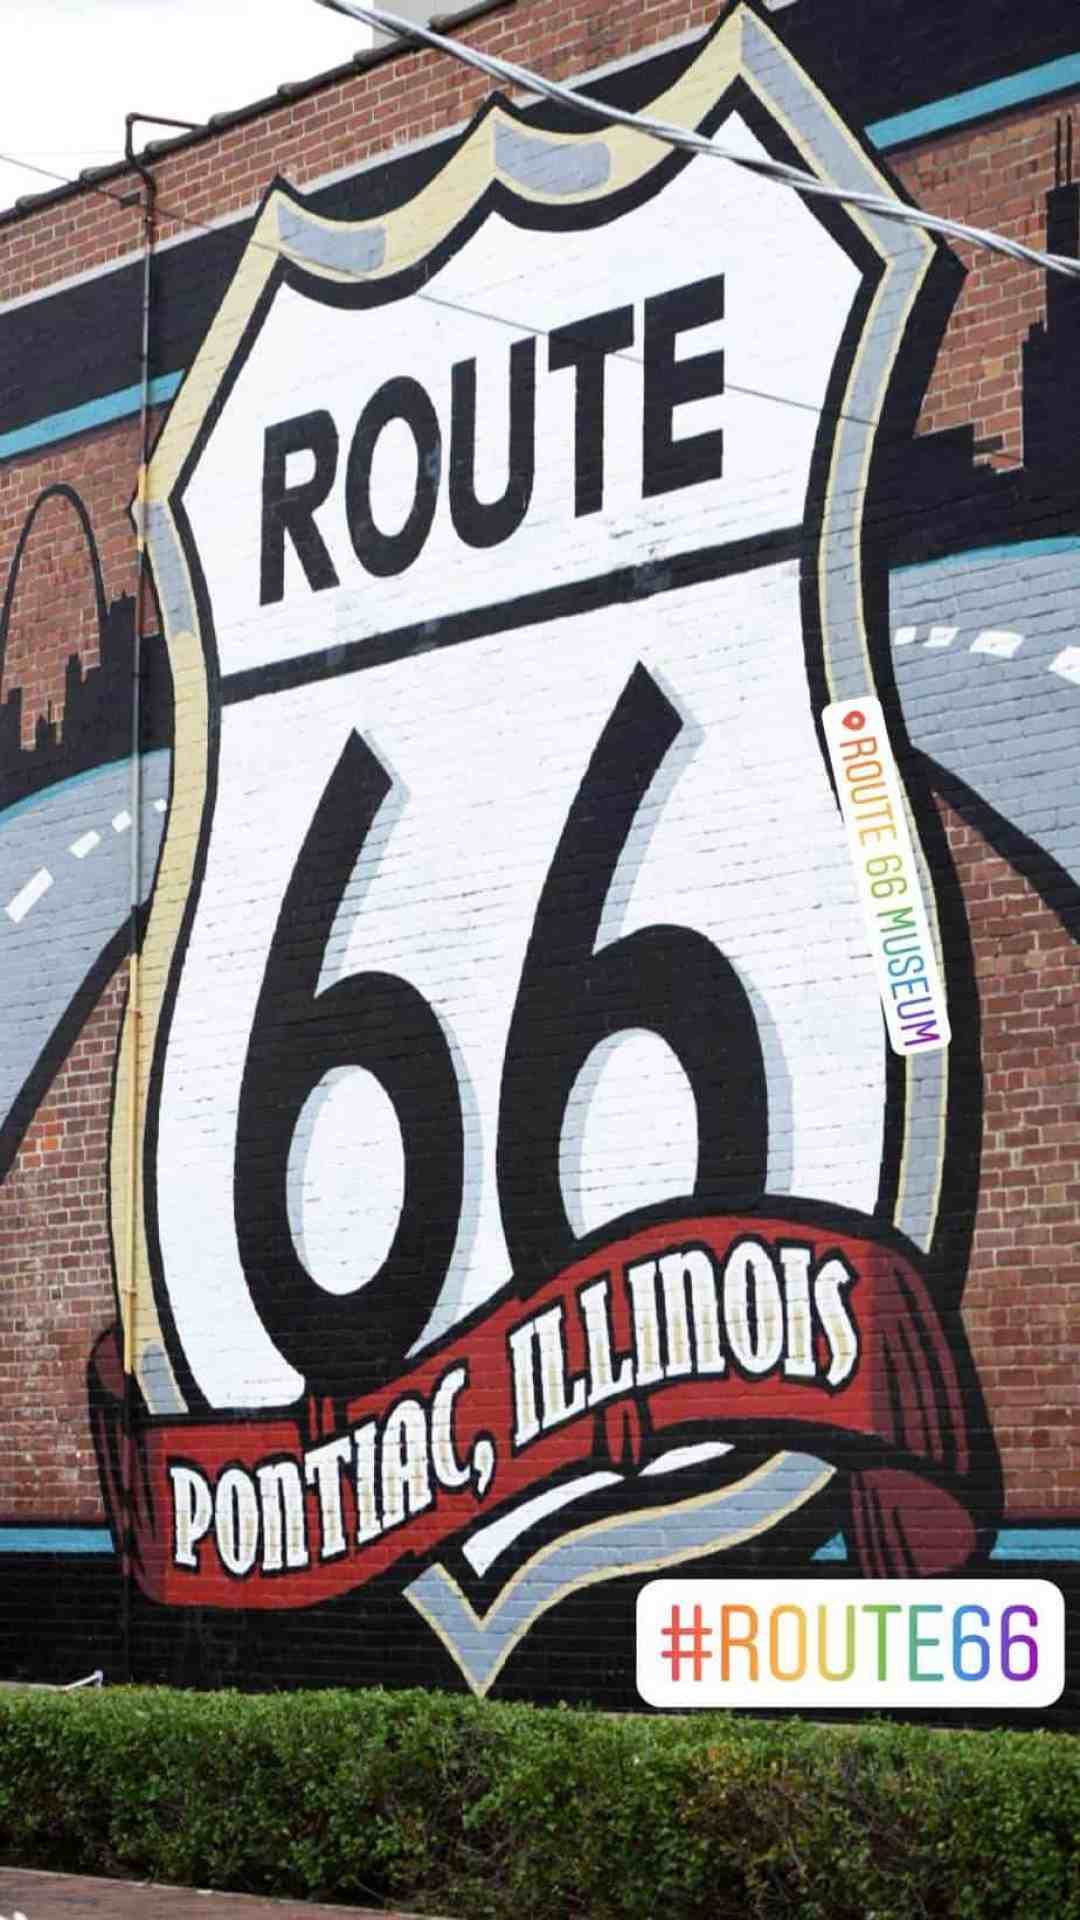 Pontiac Illinois - Route 66 Stop